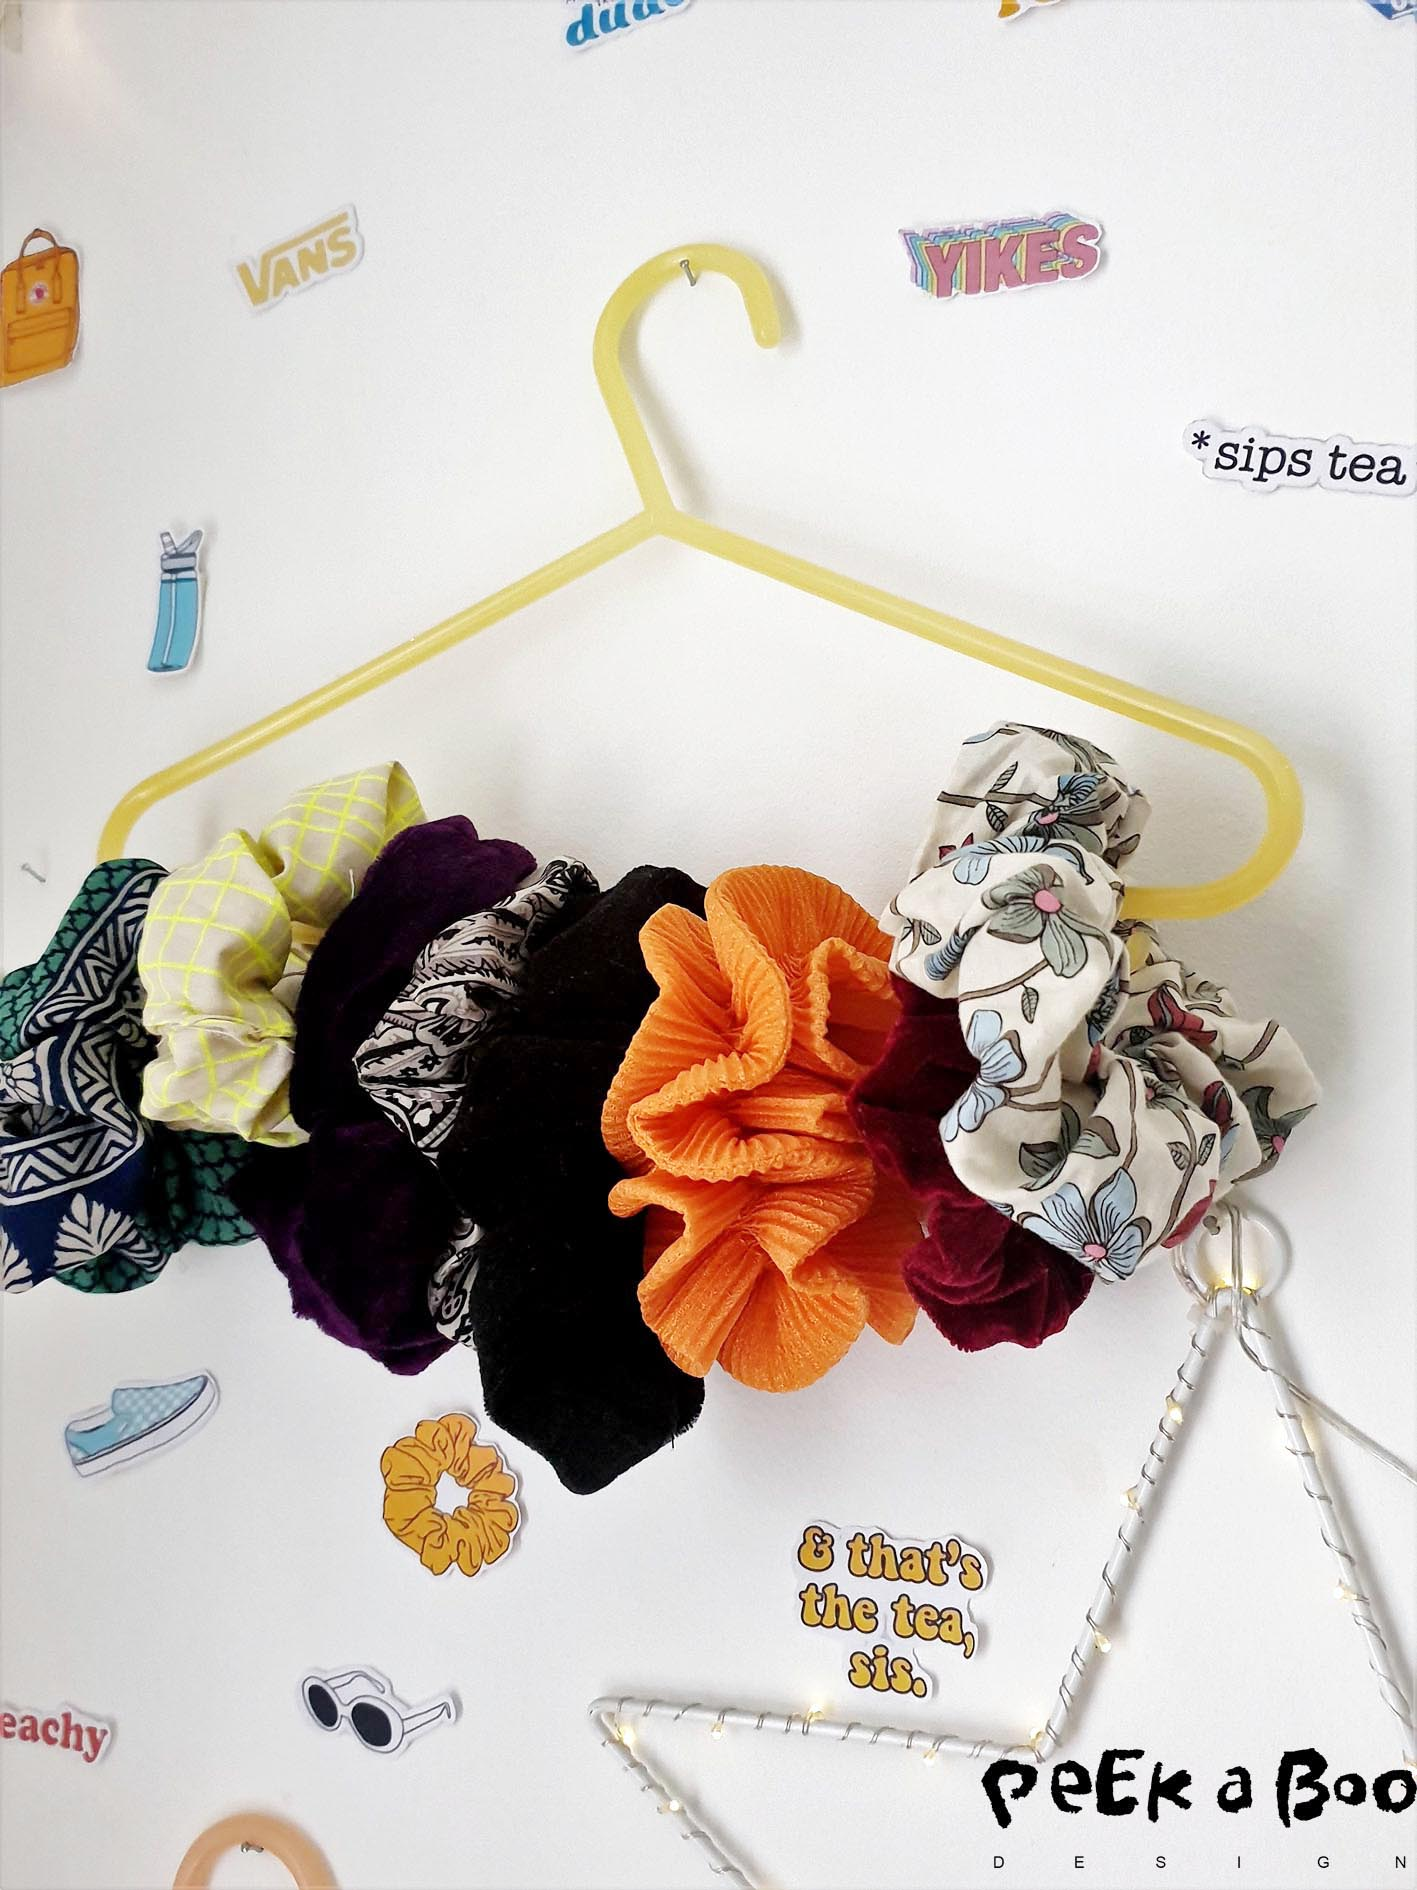 The look of the colourful scrunchies are very decorative on the wall.